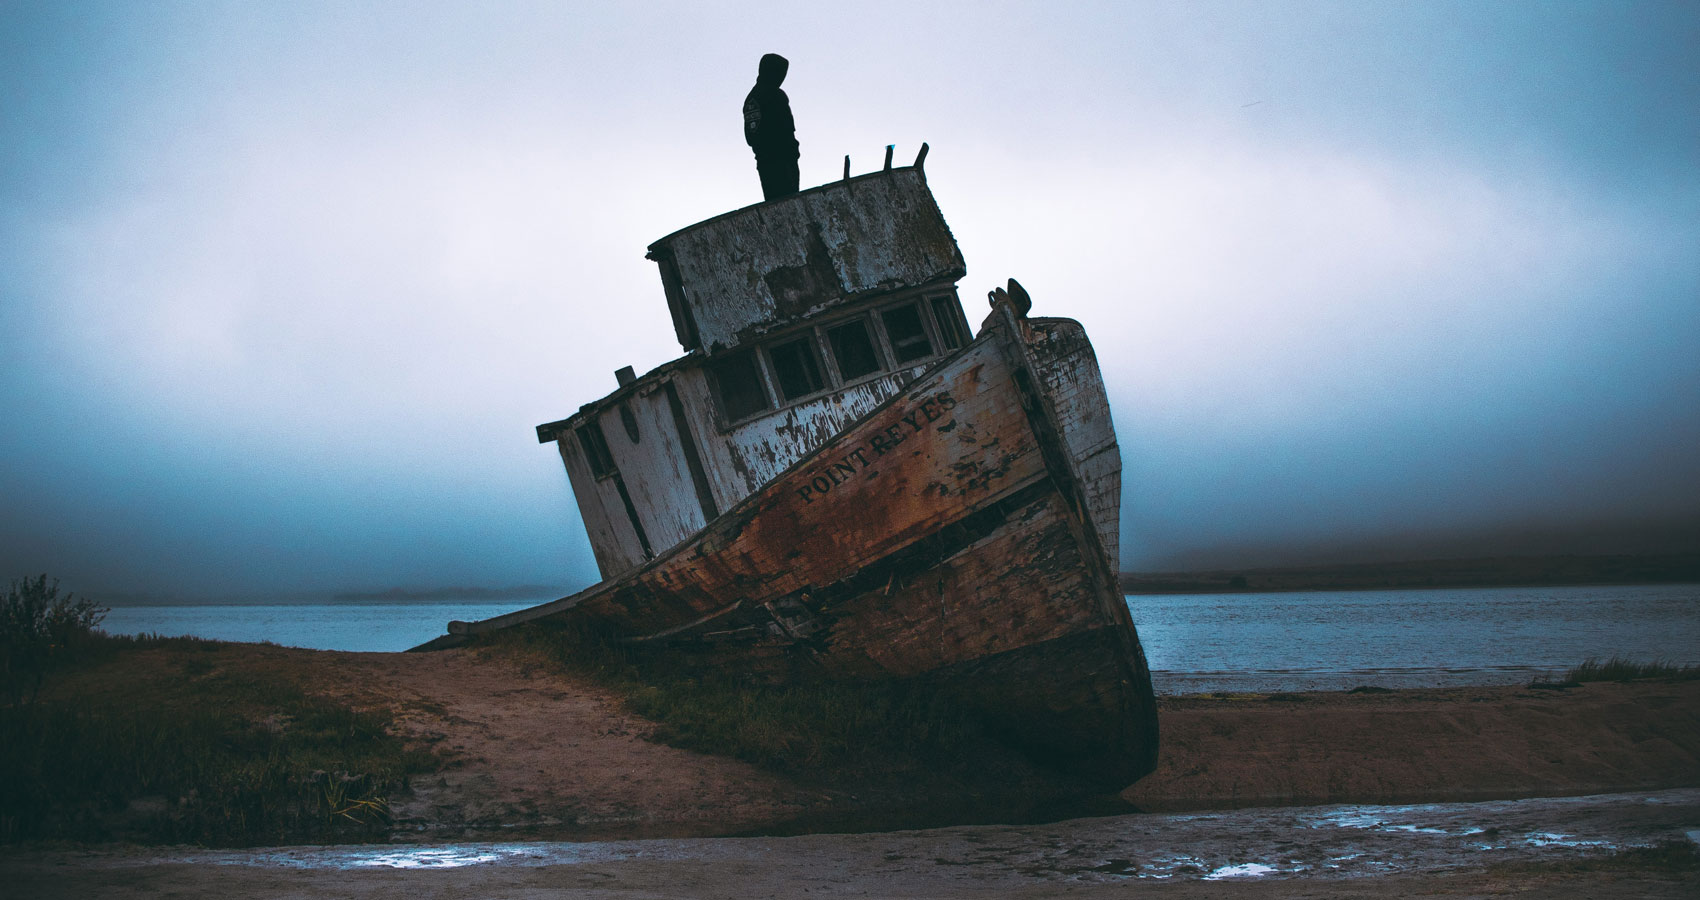 The Shipwrecked, poetry written by Luiz Syphre at Spillwords.com